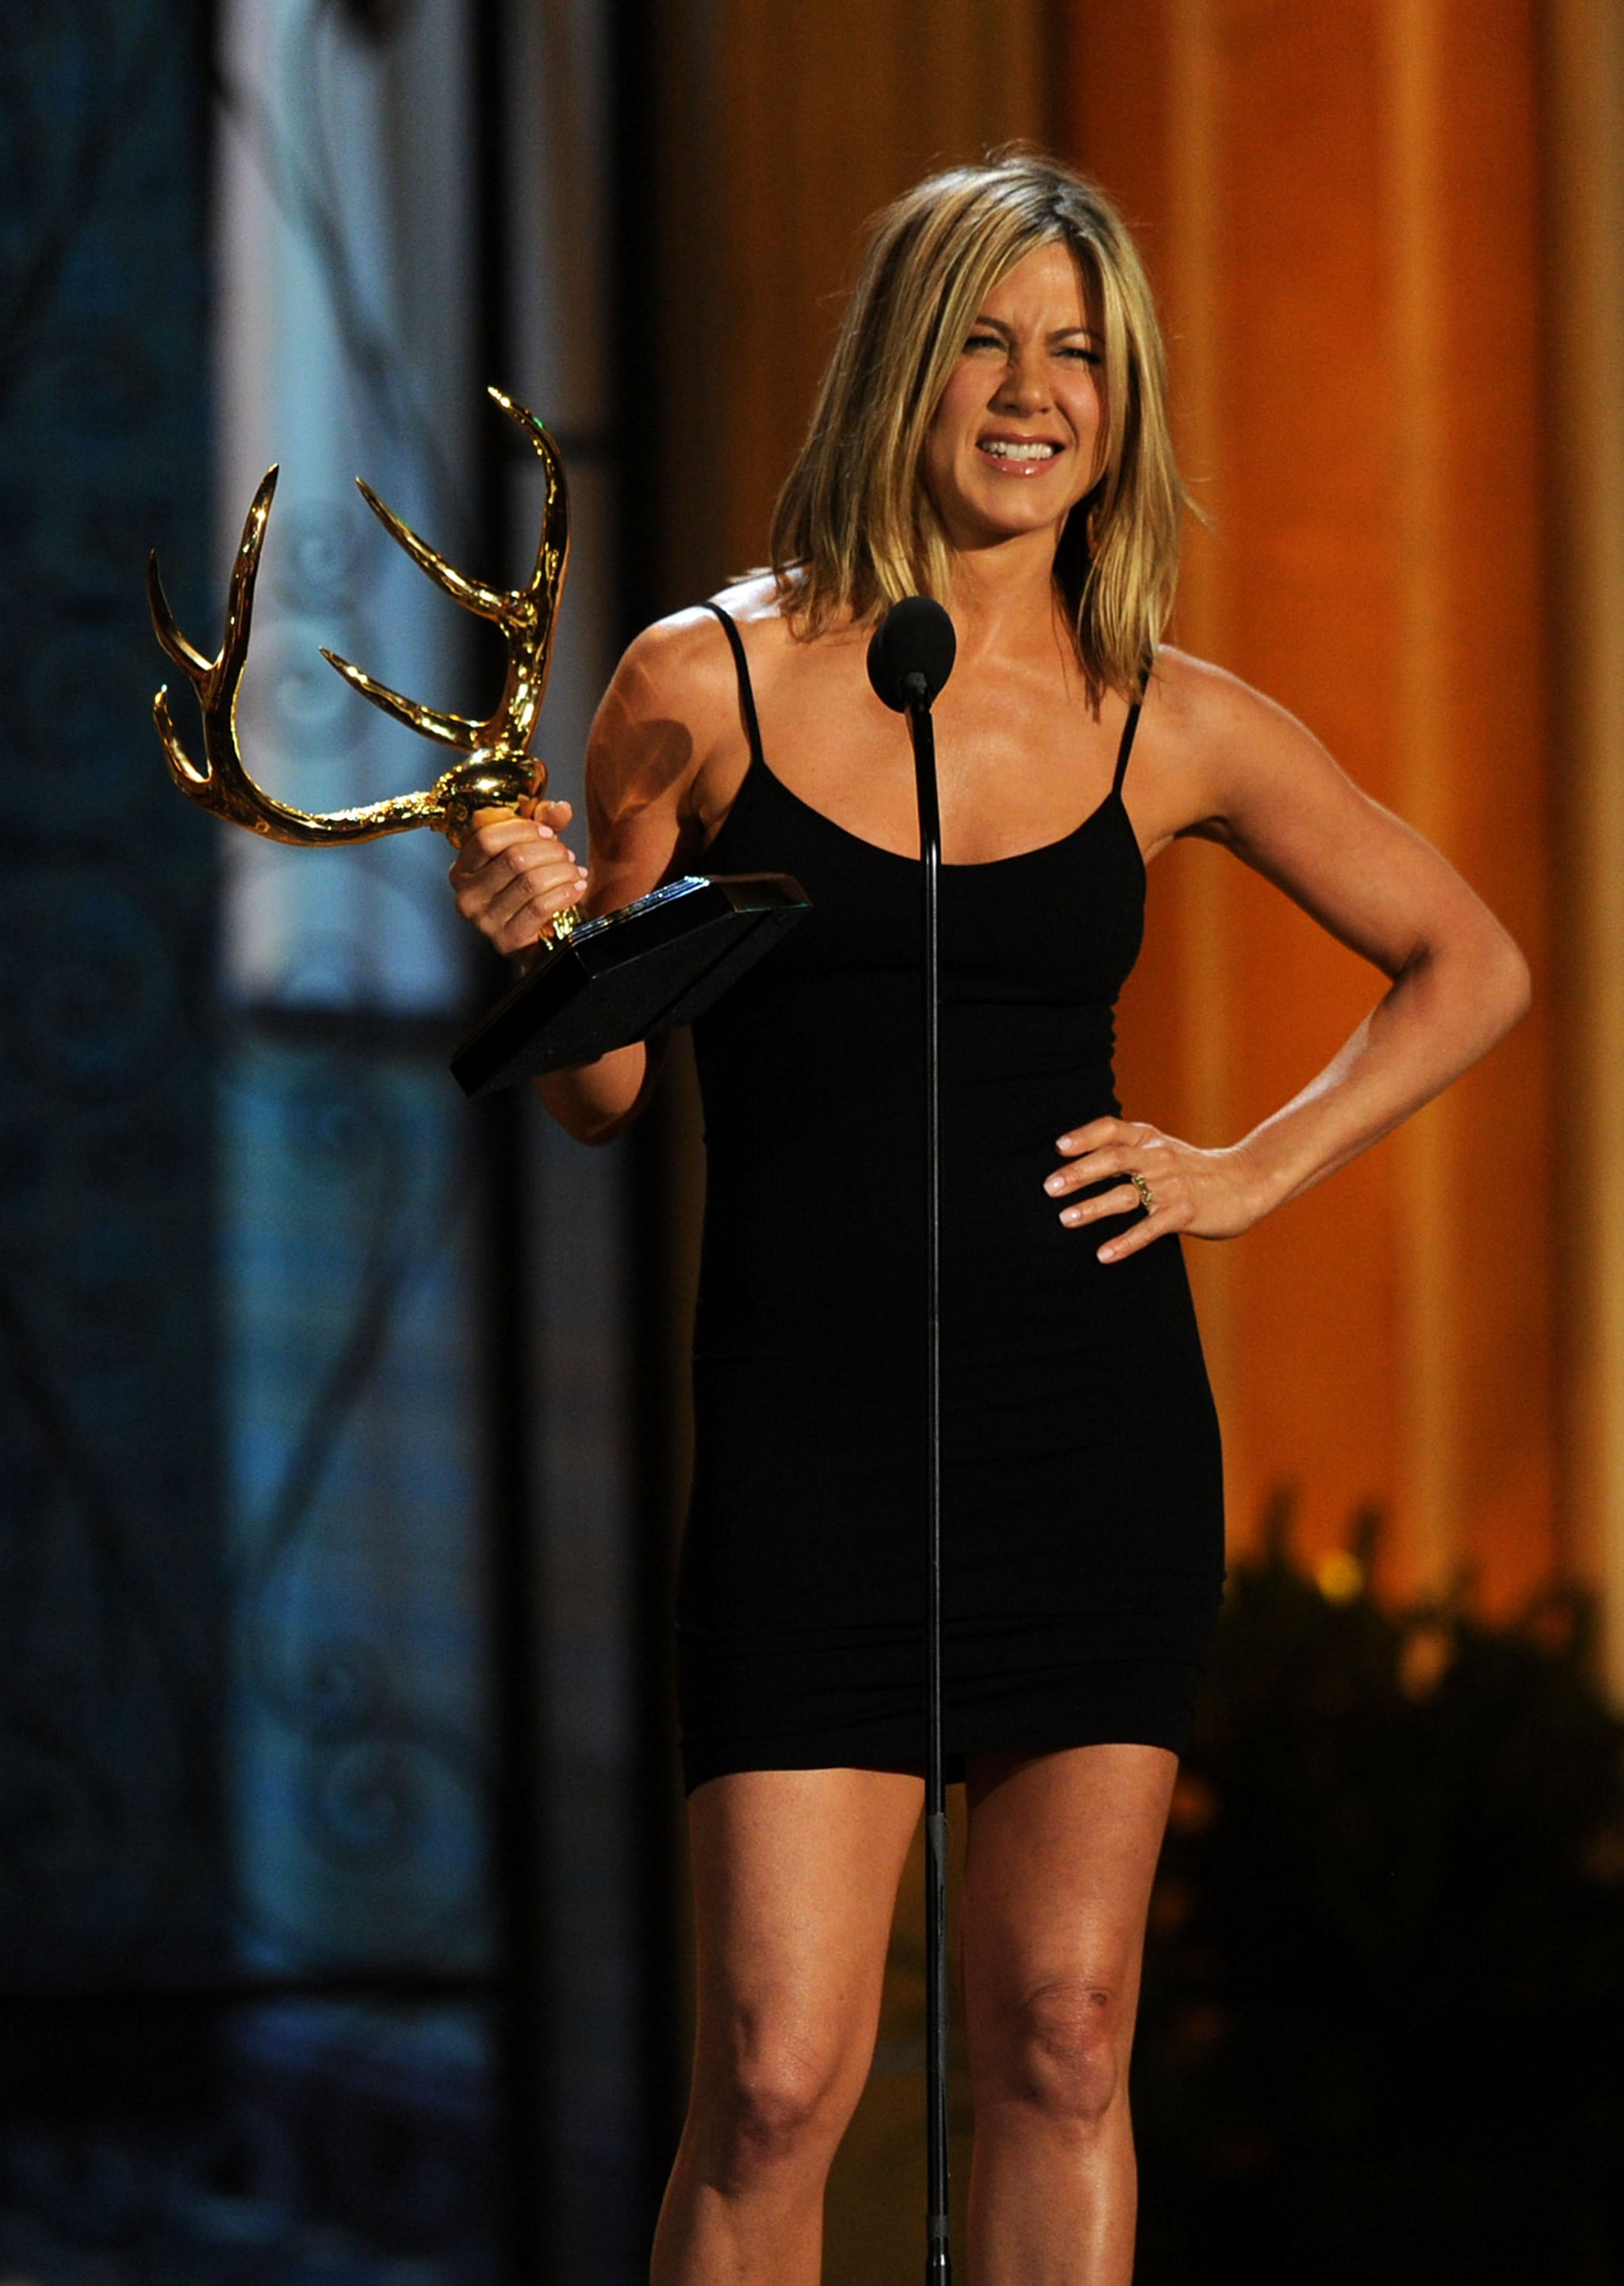 Jennifer aniston rumor has it - 2 part 9